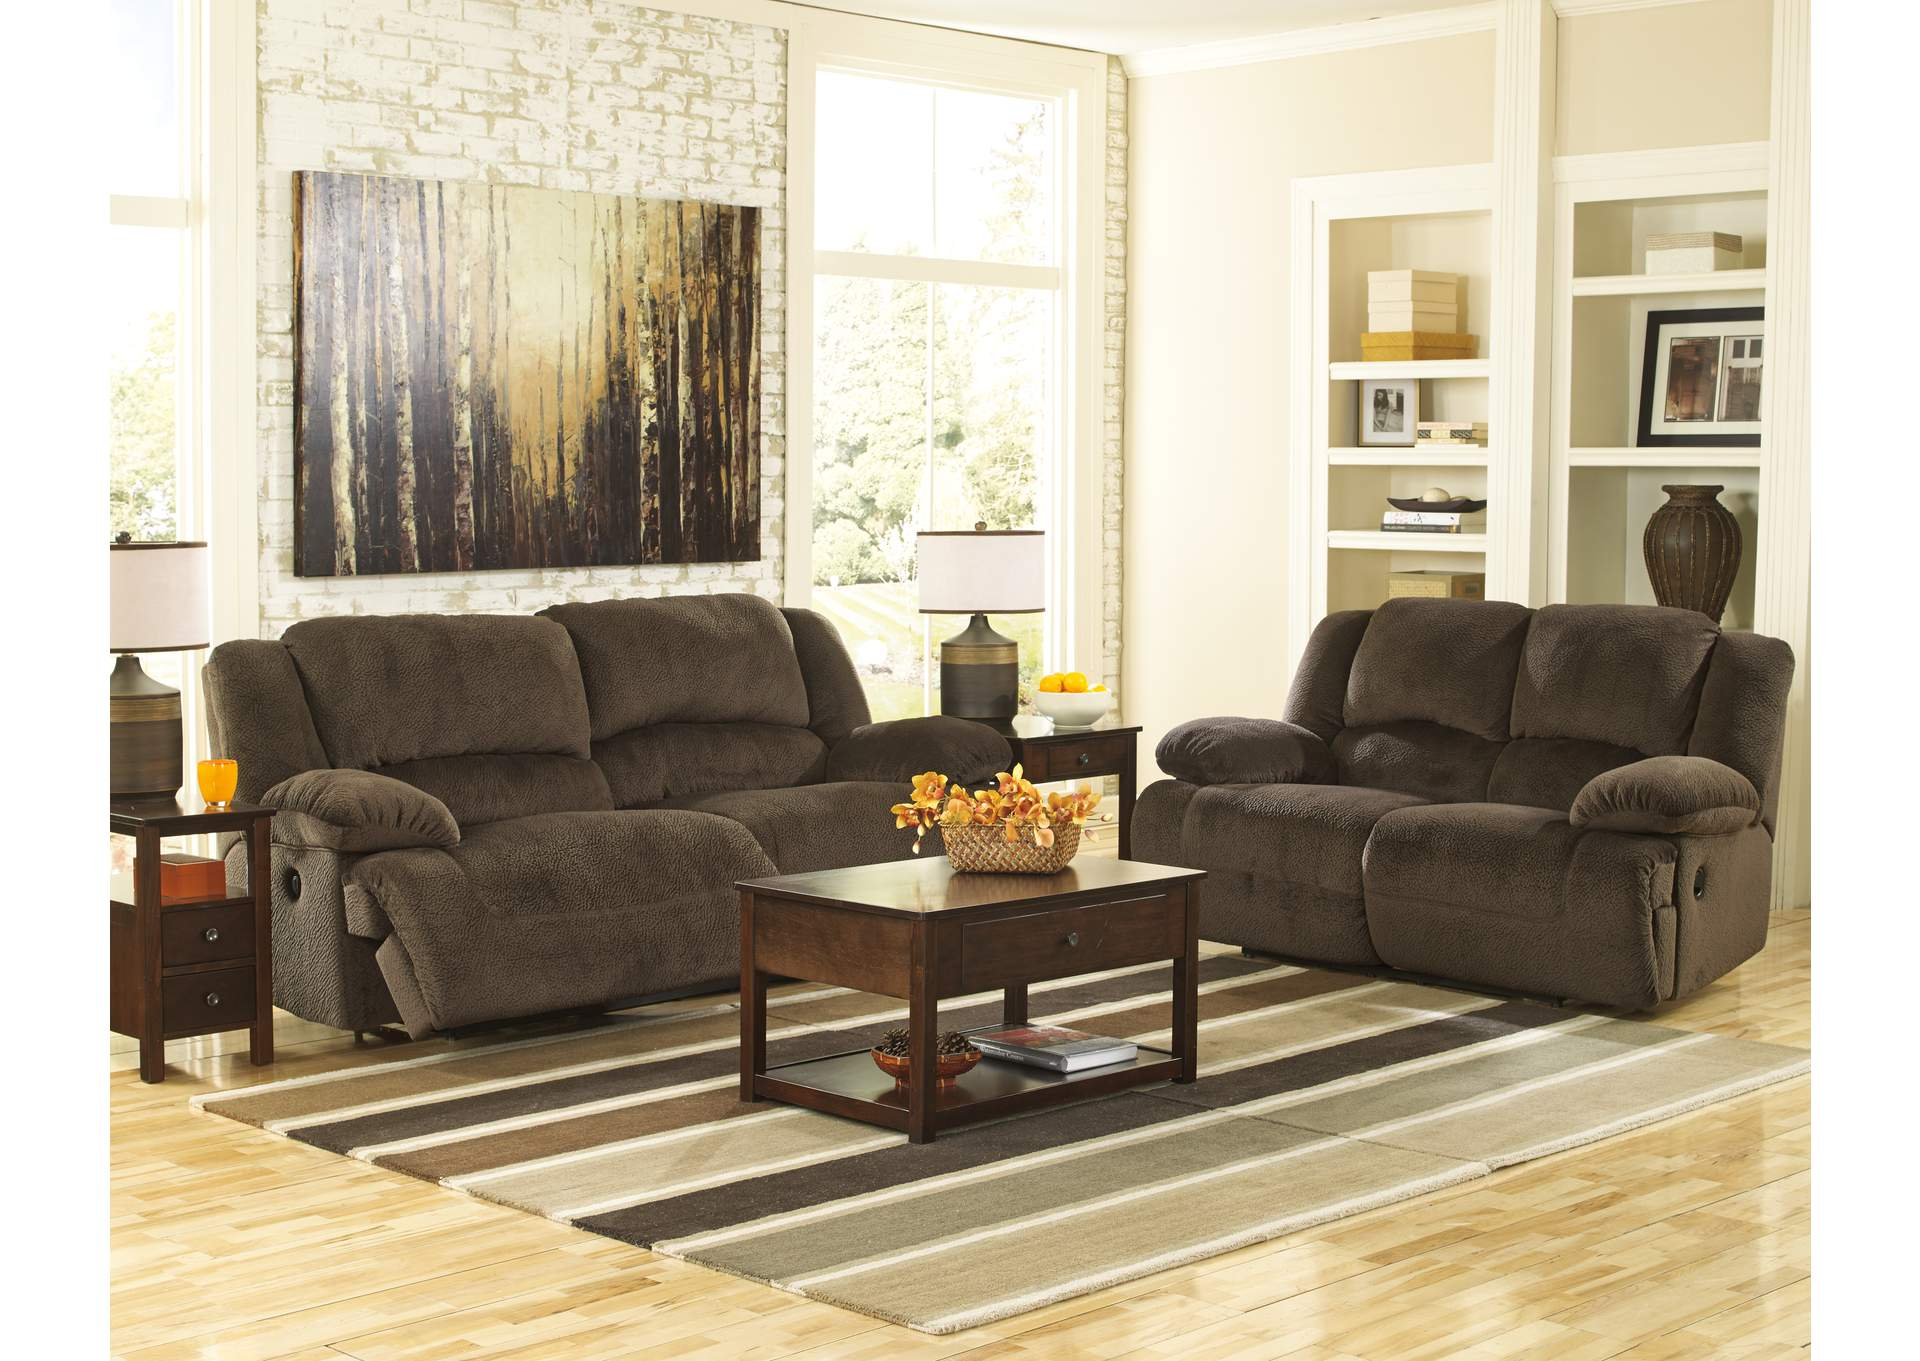 Toletta Chocolate Reclining Power Sofa & Loveseat,Signature Design By Ashley